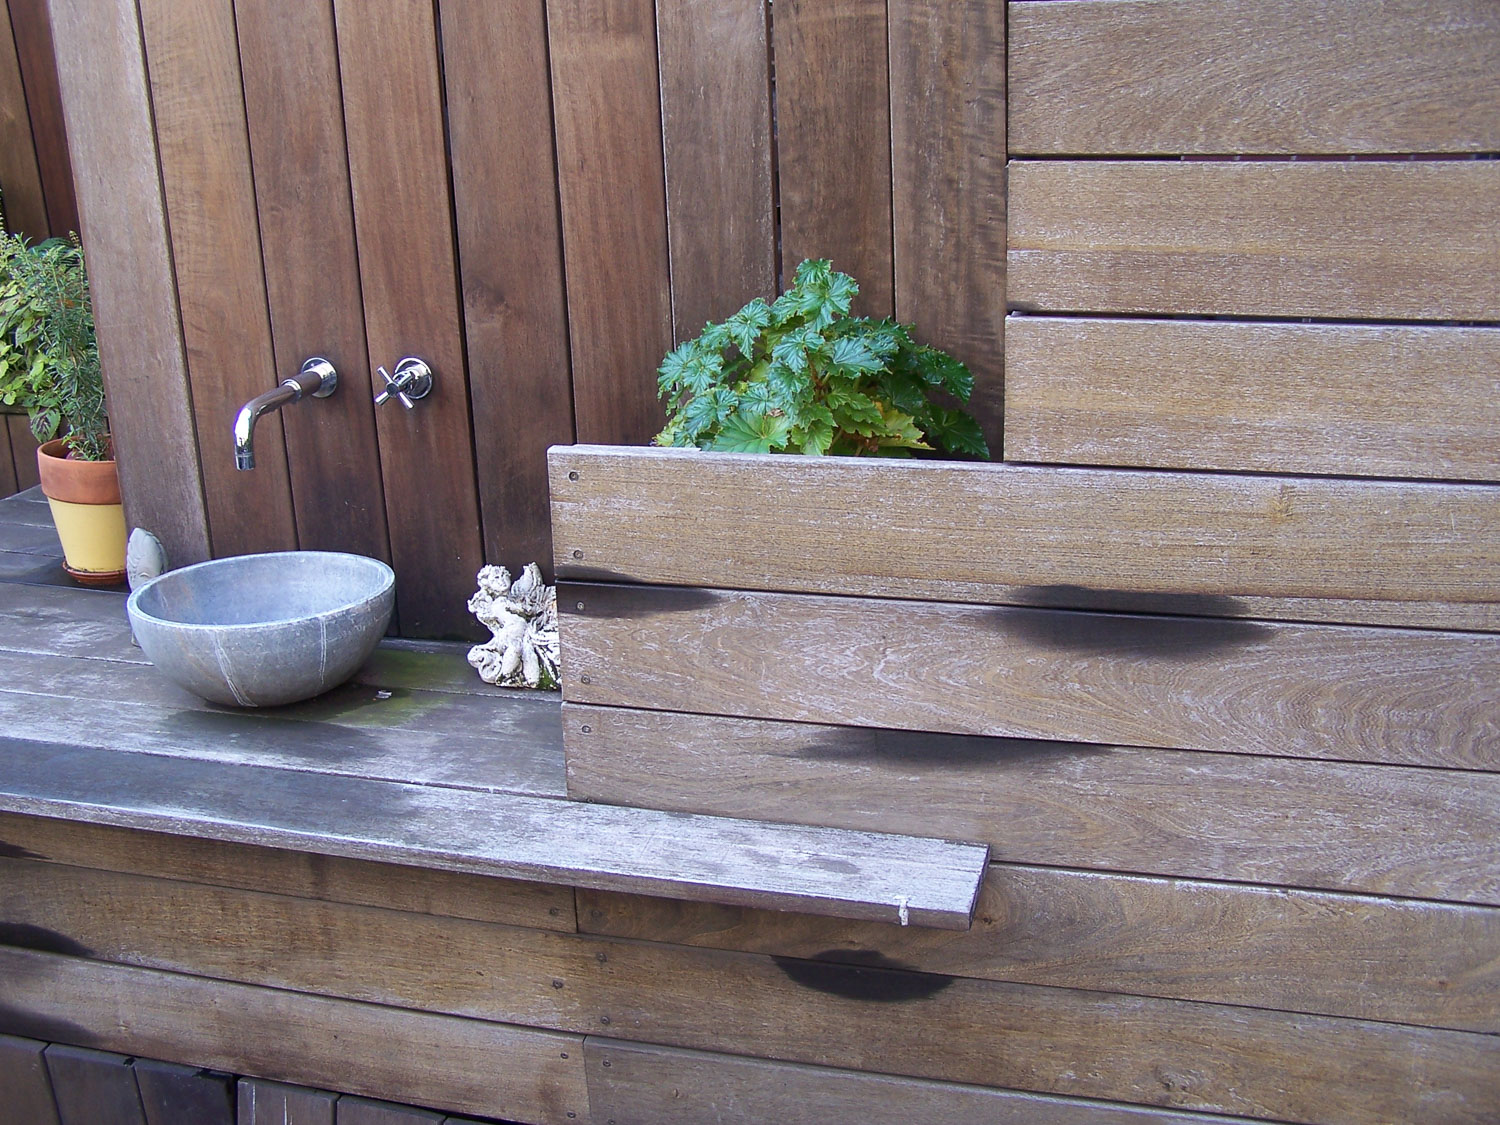 03_Sink_Petroulas Roof Garden by I-Beam_photo by Travis Dubreuil.jpg